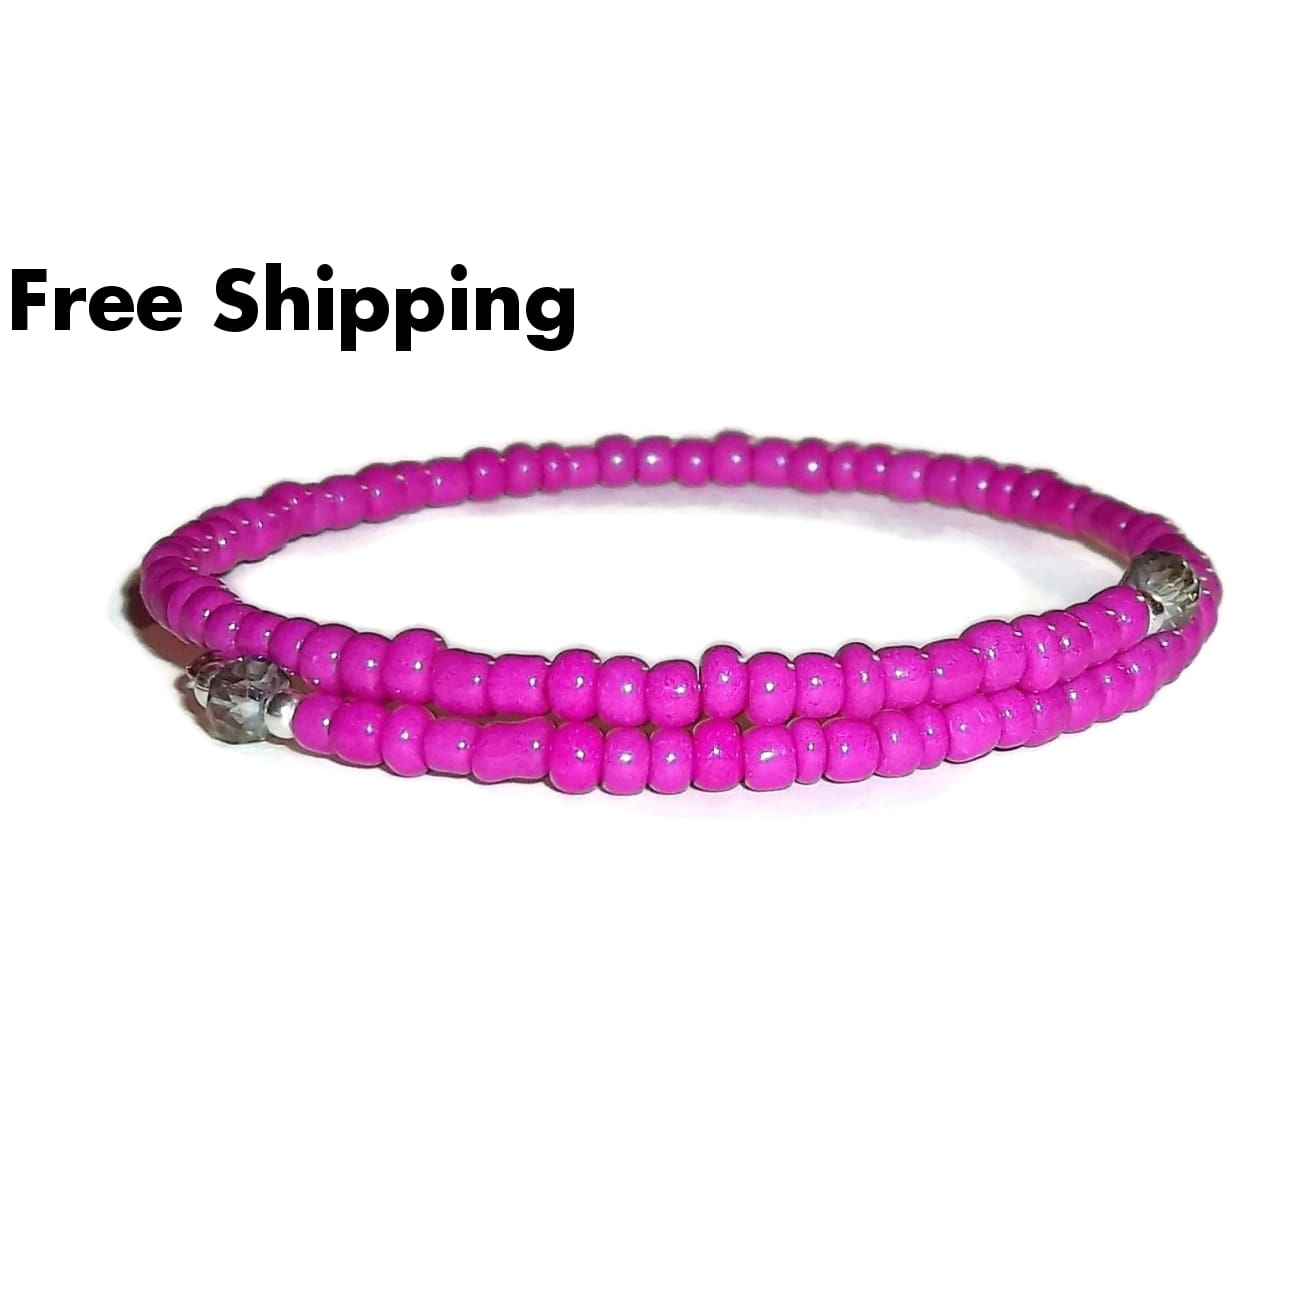 Fuscia Pink Glass & Shimmering Grey Swarovski Crystal Beaded Artisan Crafted Stackable Bracelet (Xs-S) - New Arrival